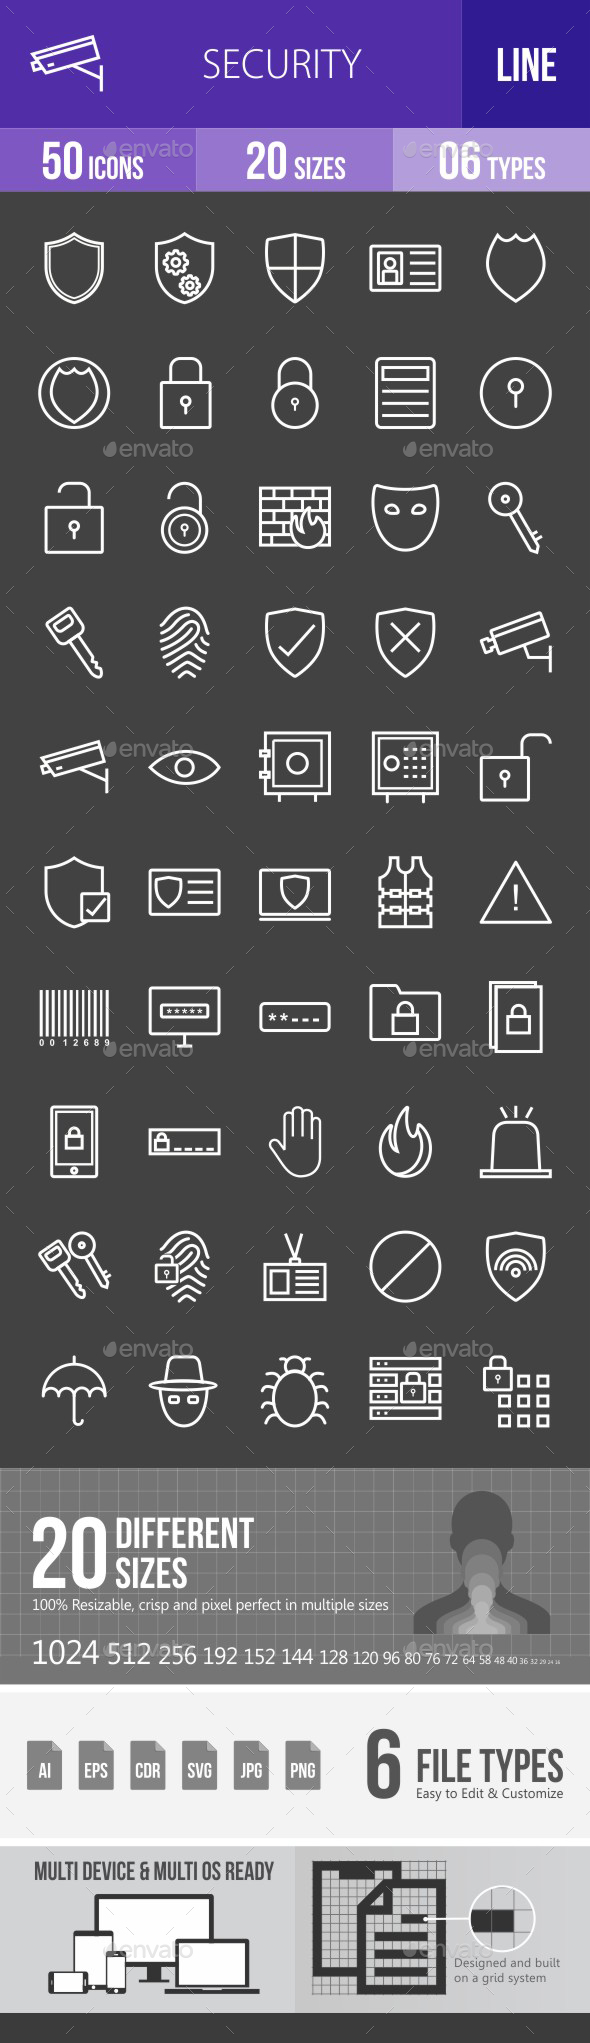 Security Line Inverted Icons - Icons